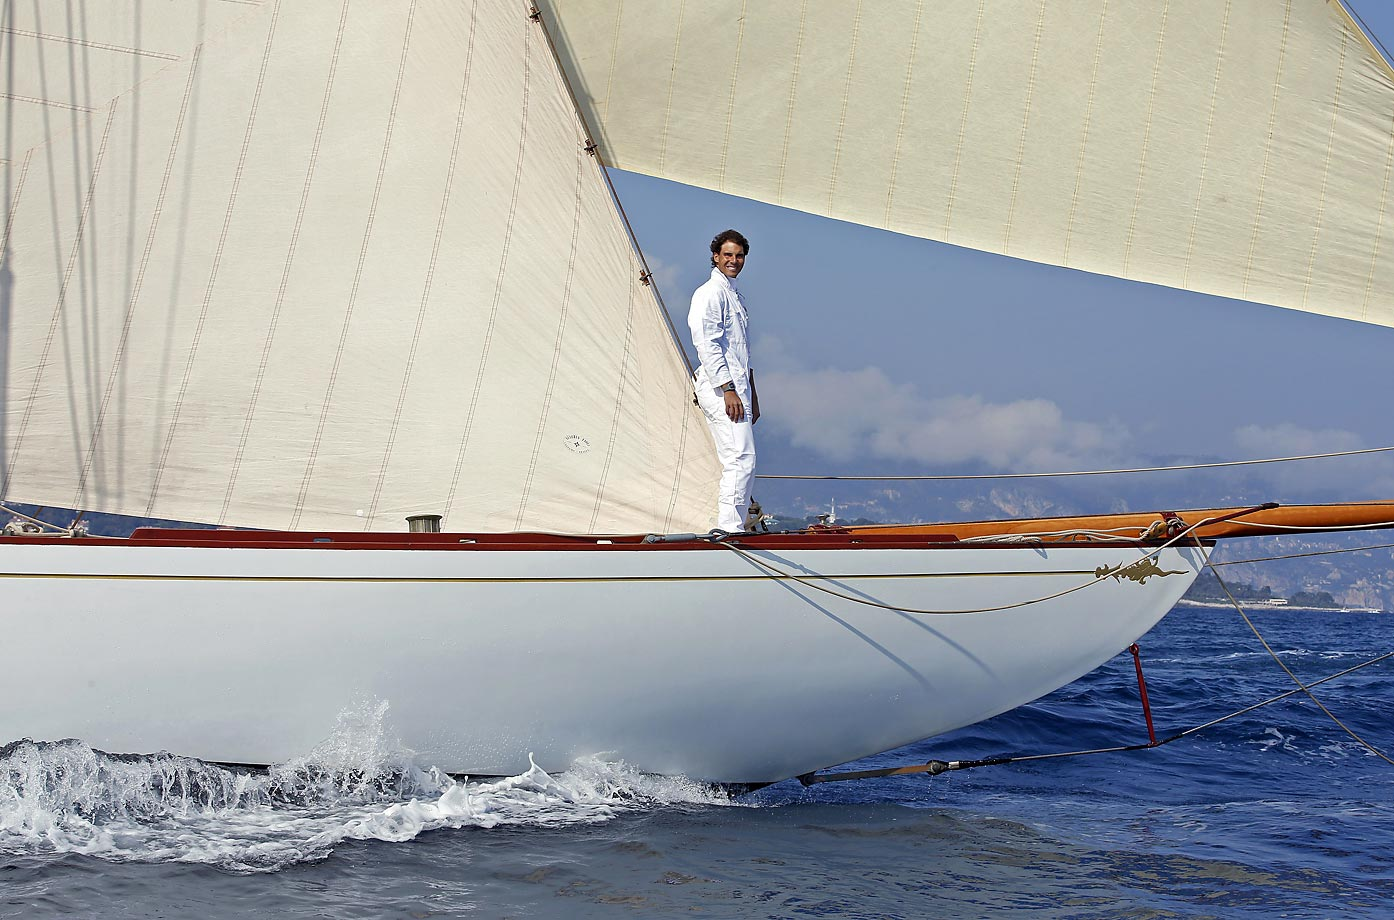 Rafael Nadal sails on a Tuiga yacht in 2014 during the Monte Carlo ATP Masters tennis tournament.